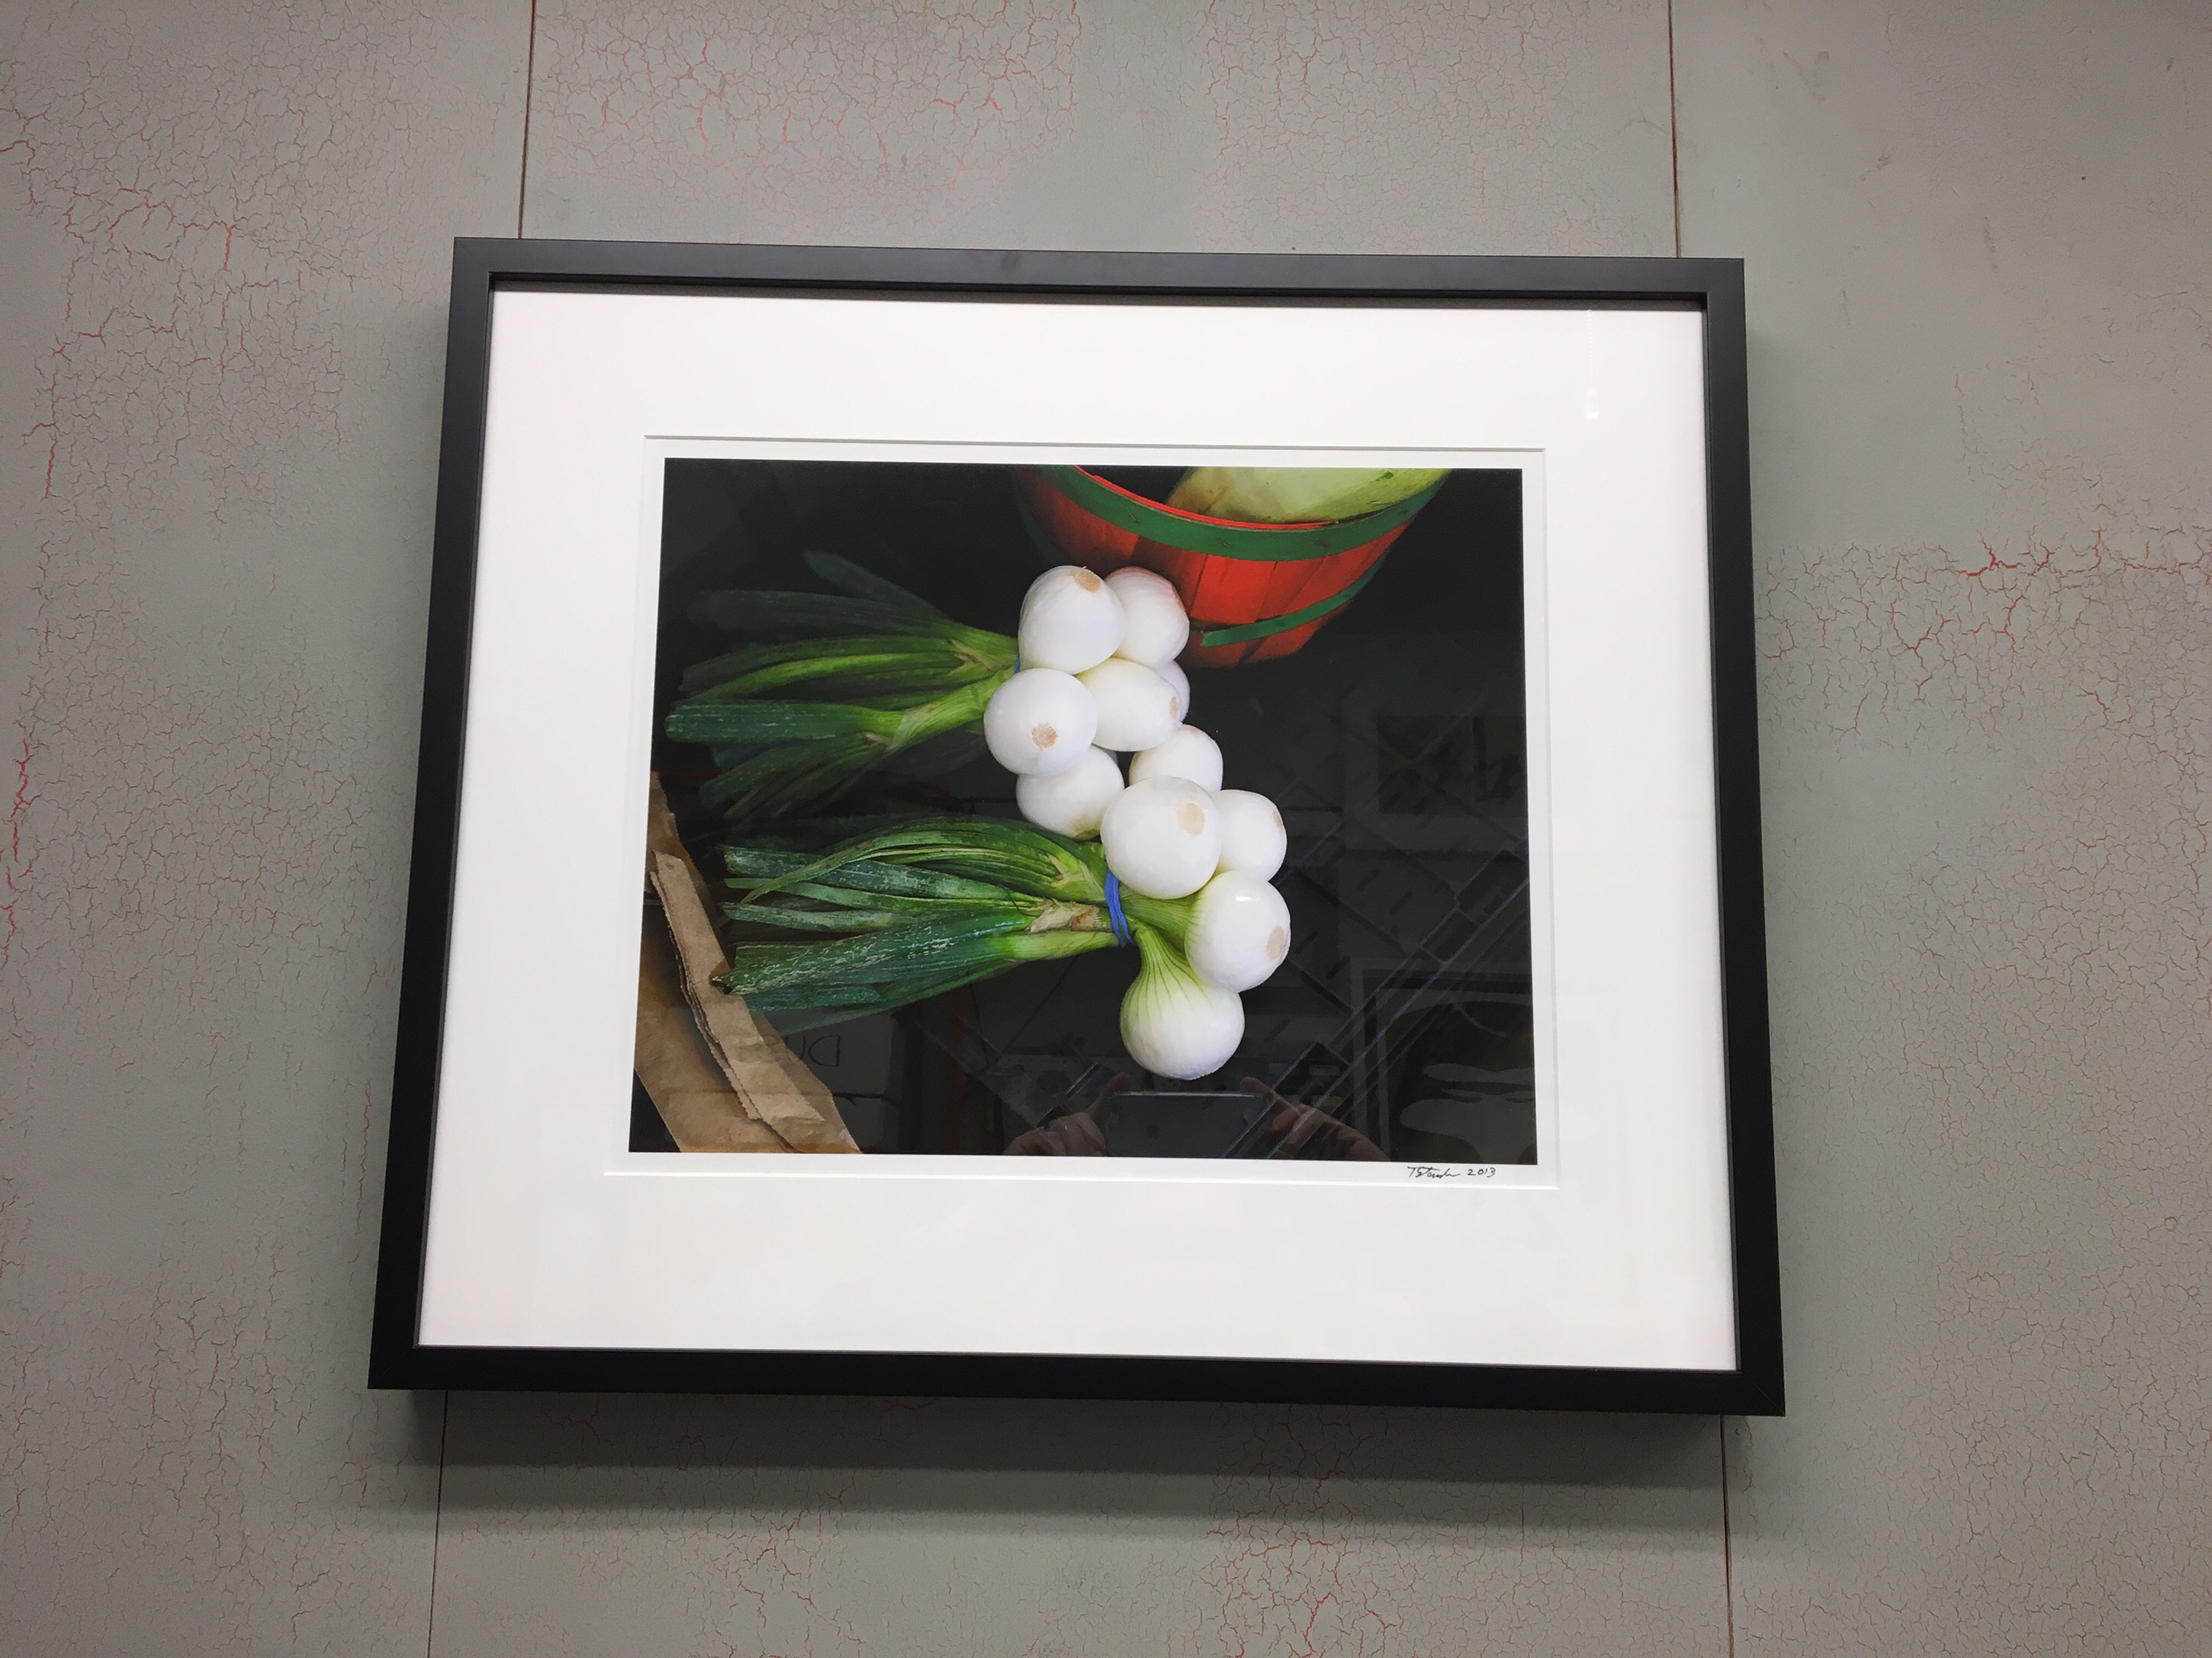 """Onions"" Photo in our Archival and Easily Changeable Gallery Framing Package"